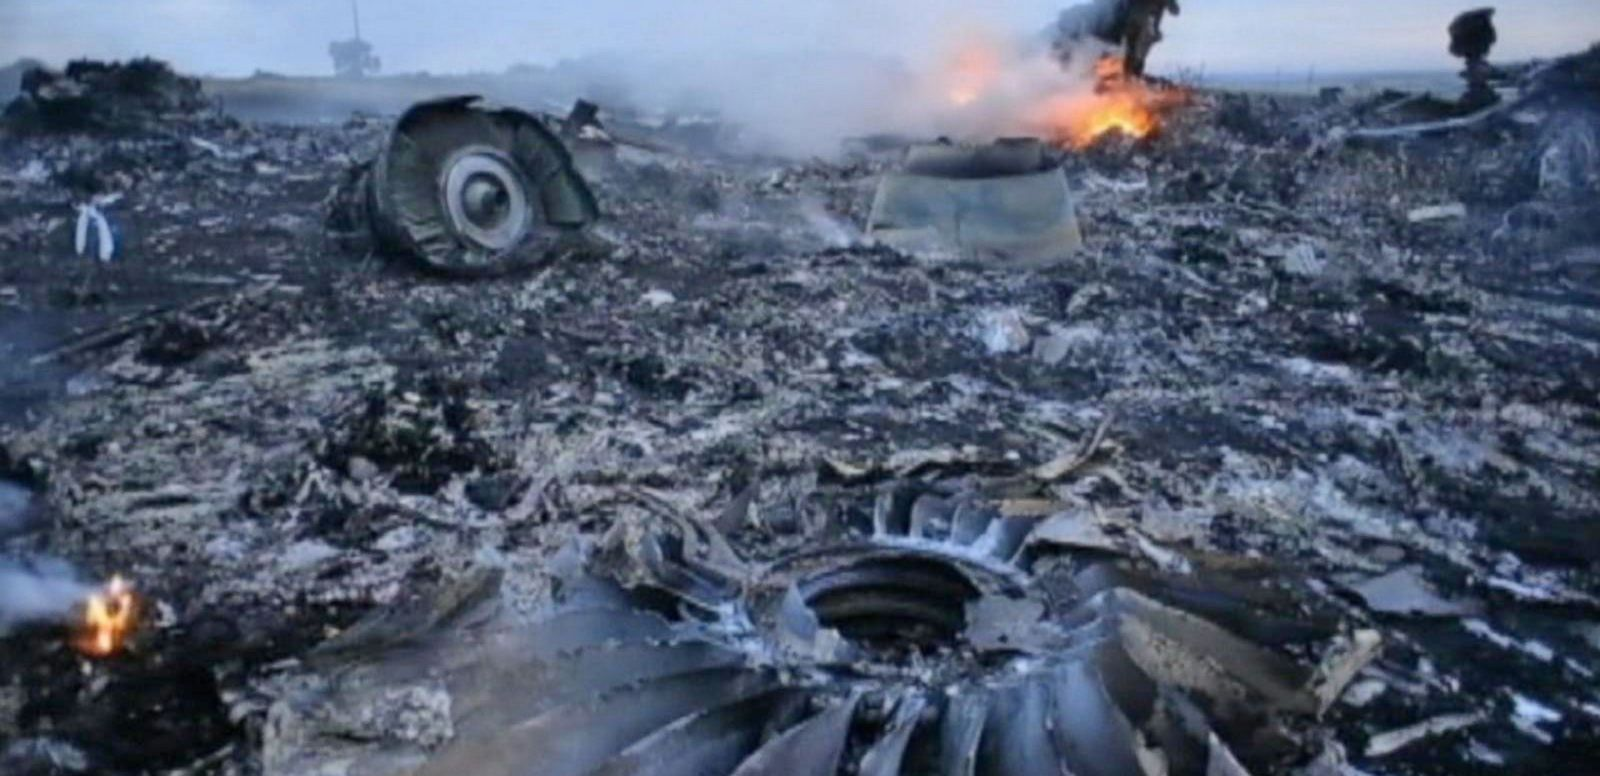 VIDEO: Final Report on Malaysia Airlines Flight Downed Over Ukraine Is Released